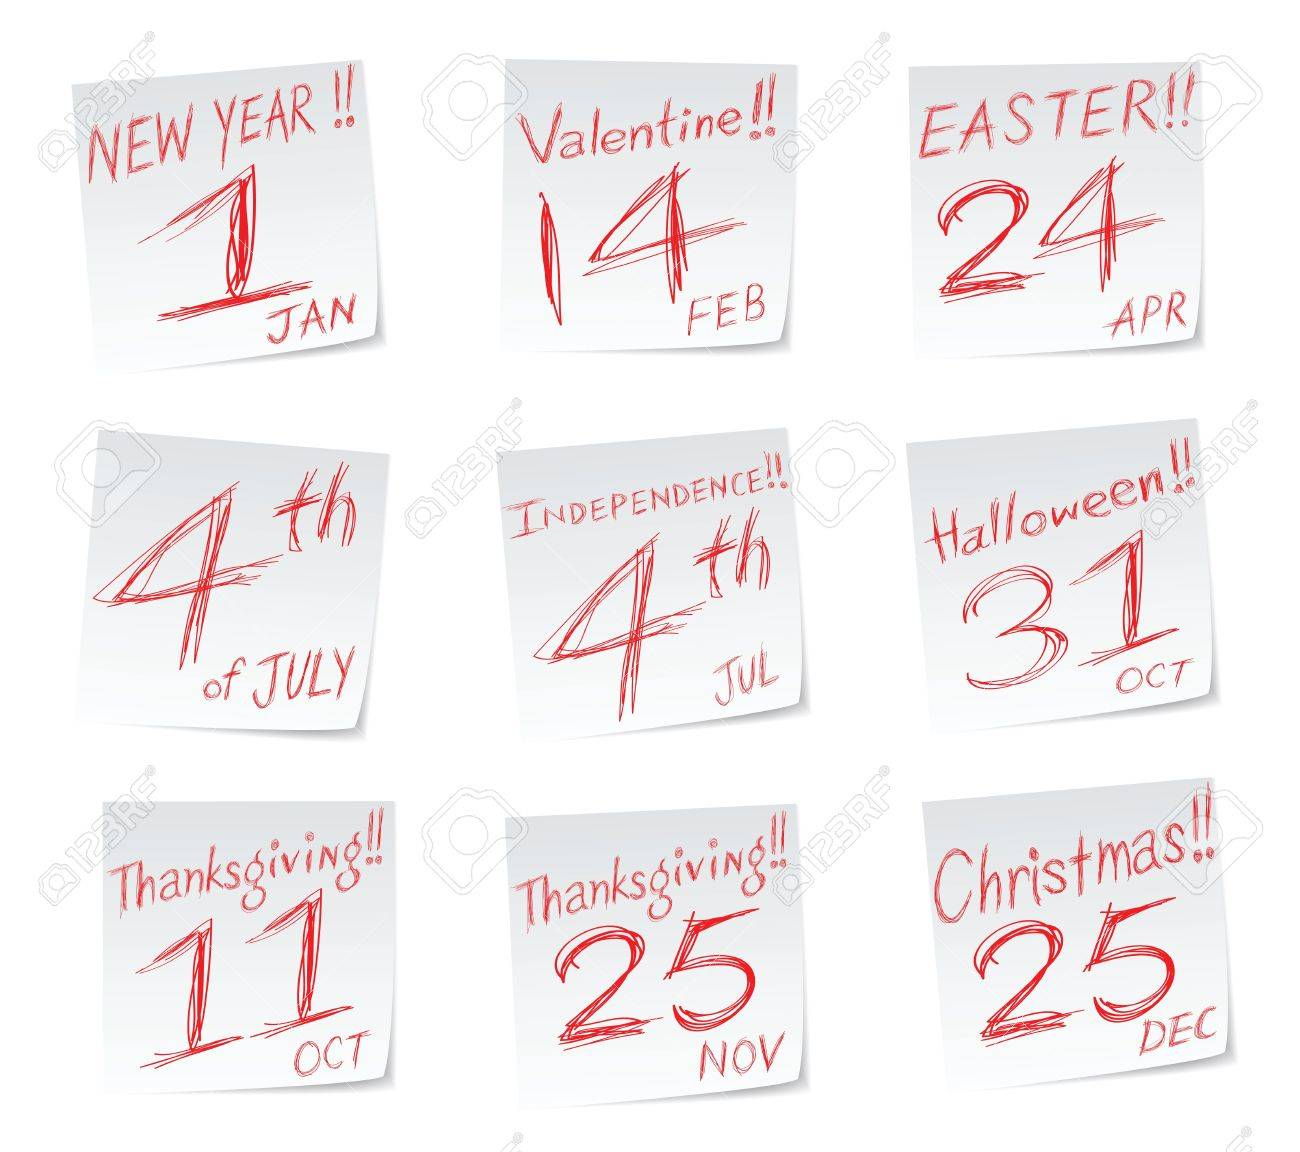 holiday icons with date of calendar new year valentines day holiday icons with date of calendar new year valentines day - Halloween Date This Year